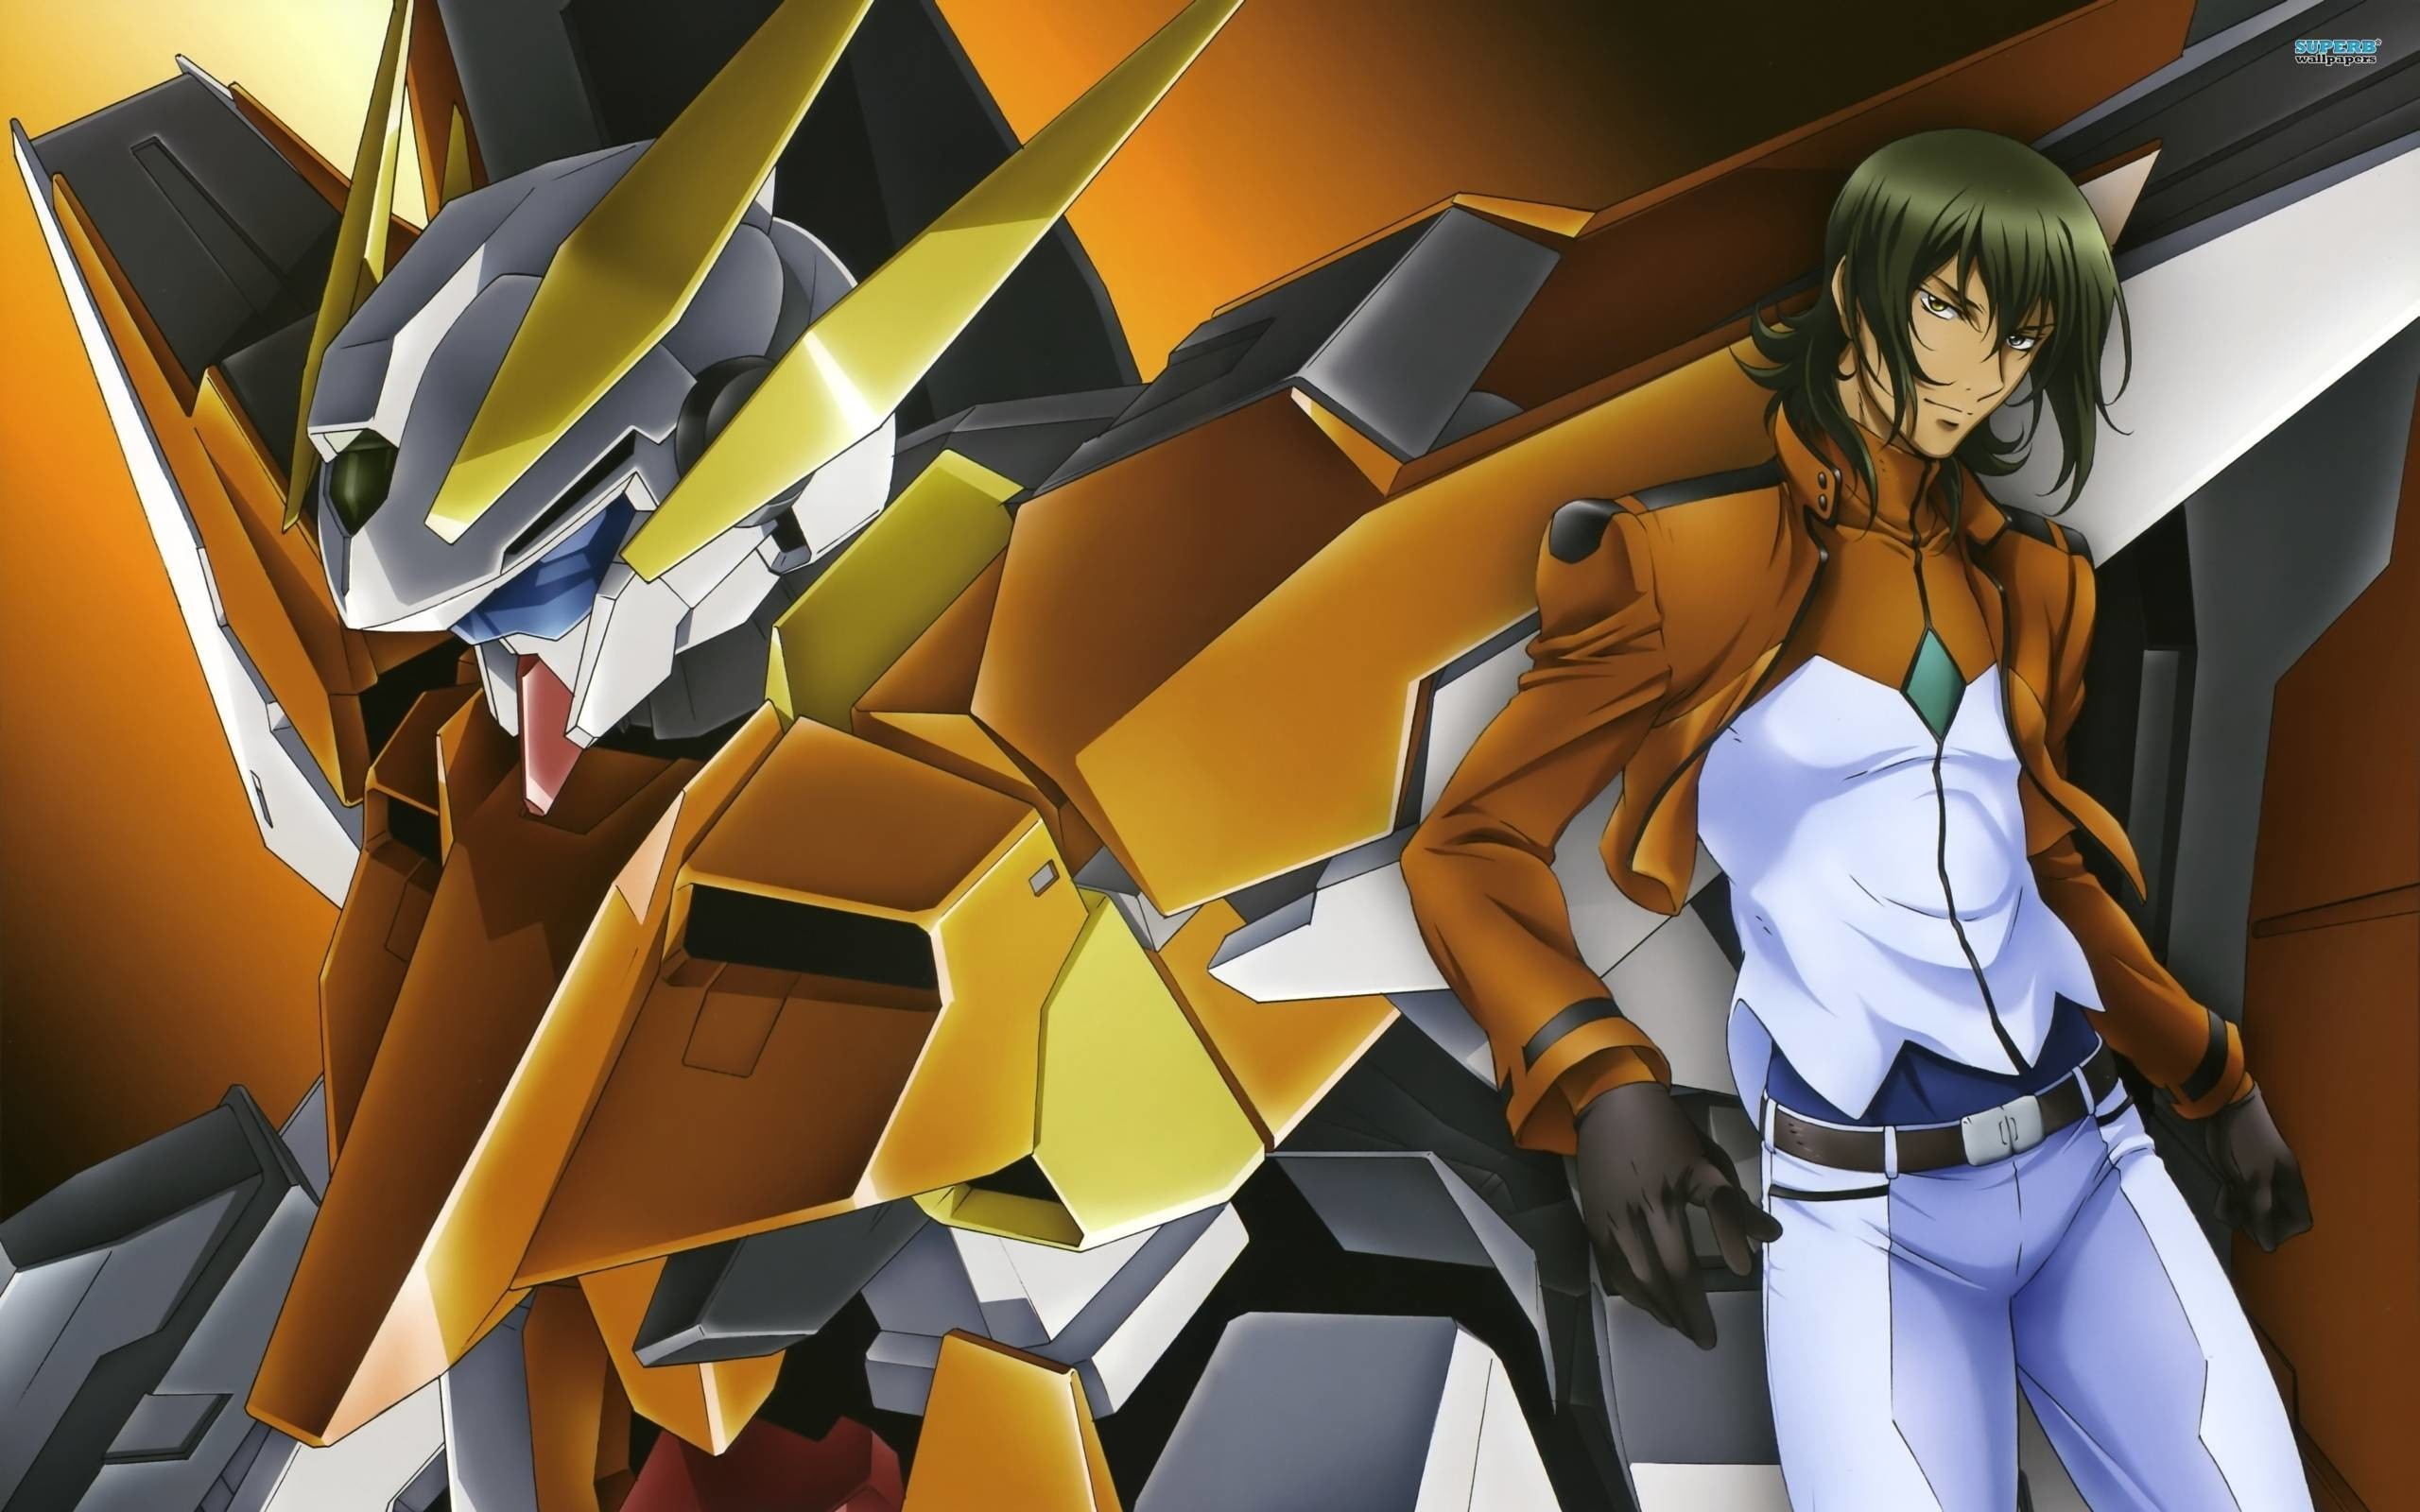 2560x1600 Mobile Suit Gundam 00 wallpaper - Anime wallpapers - #7164